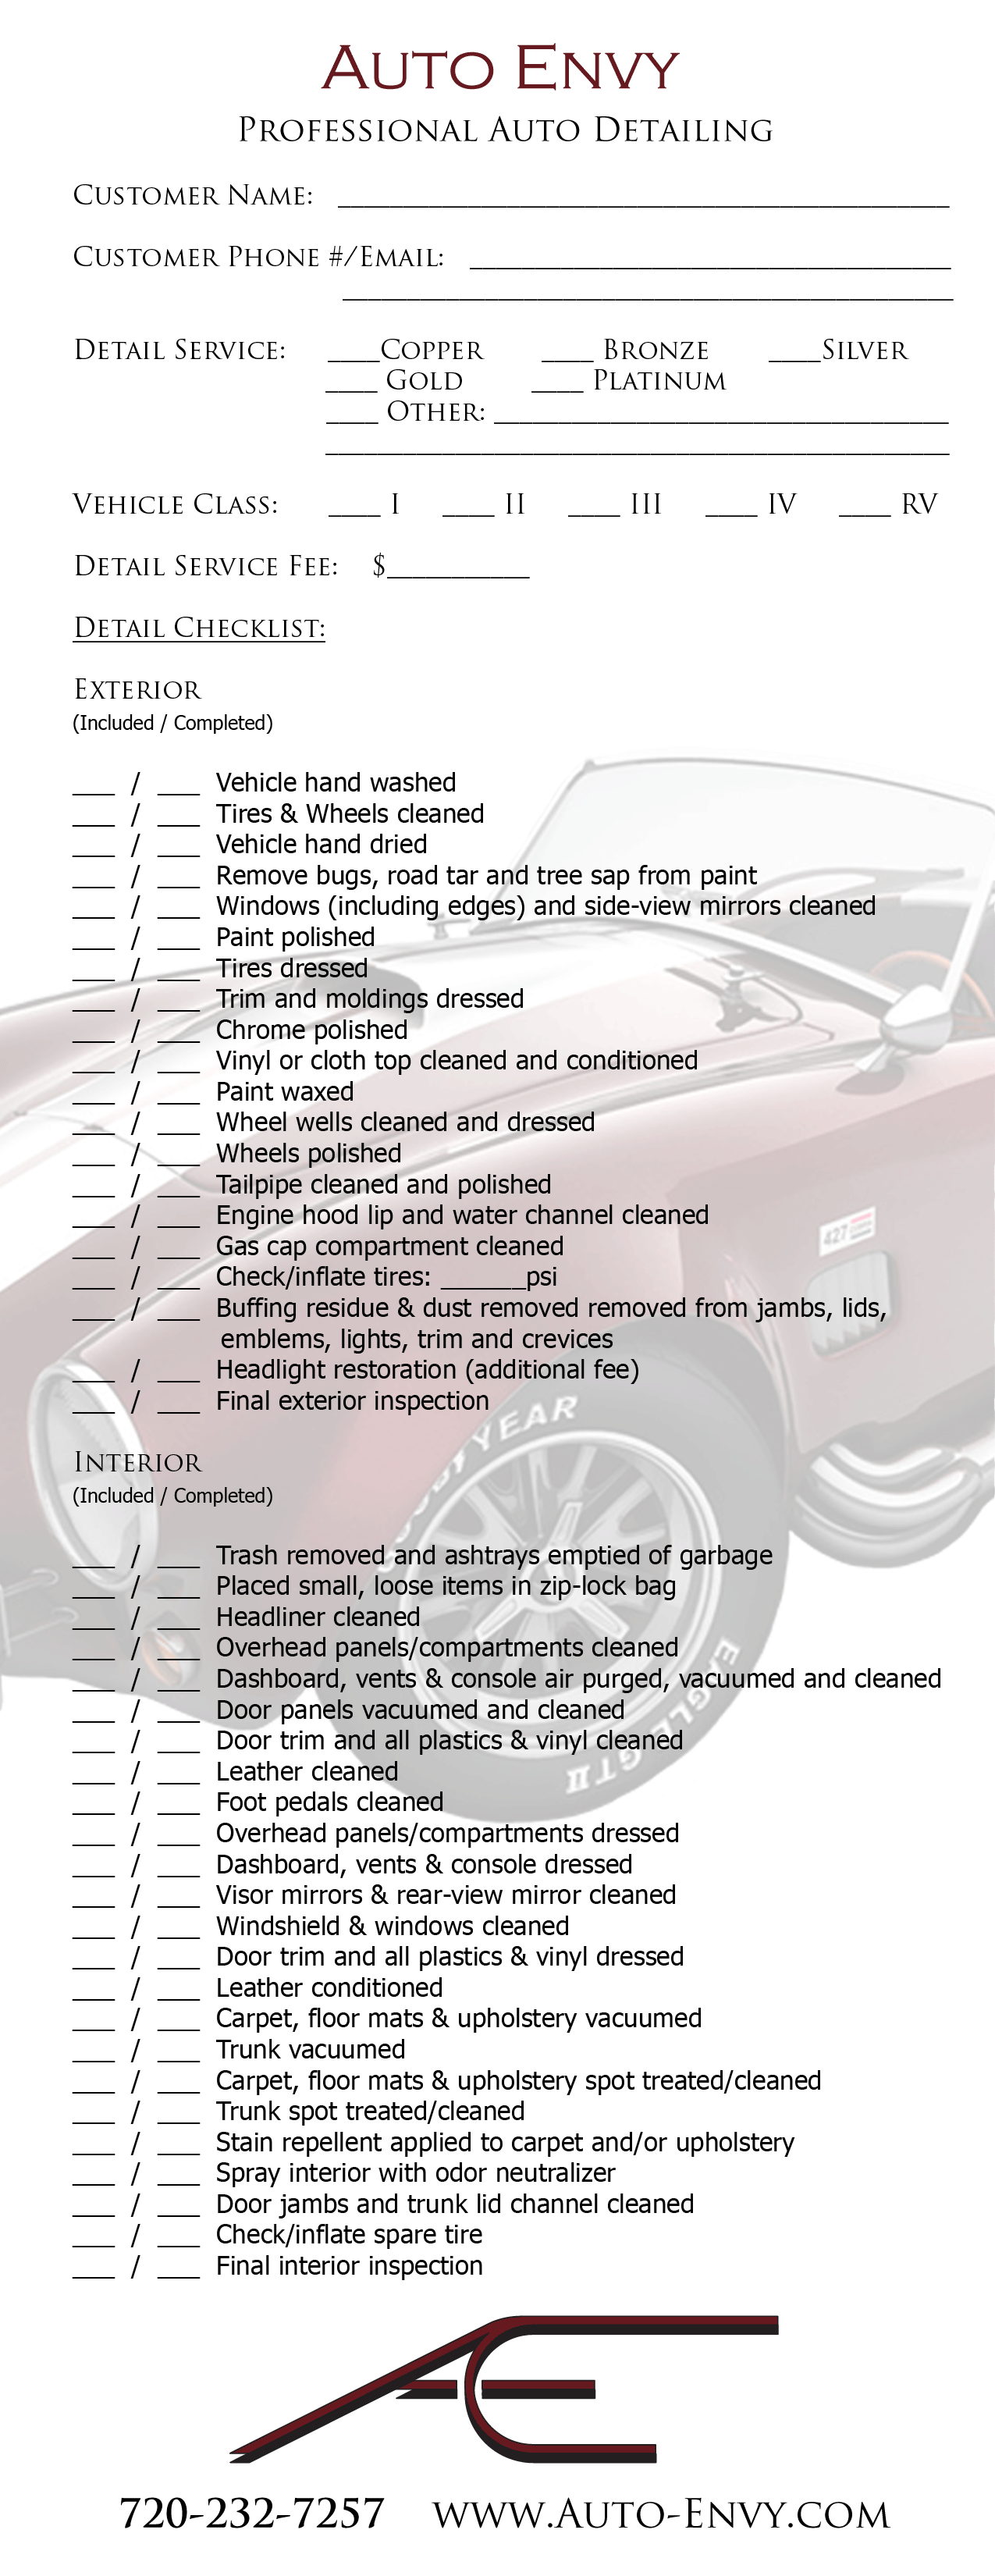 Car Inspection Checklist >> checklist-half-partial | Dry hands, Car detailing, Personalized items